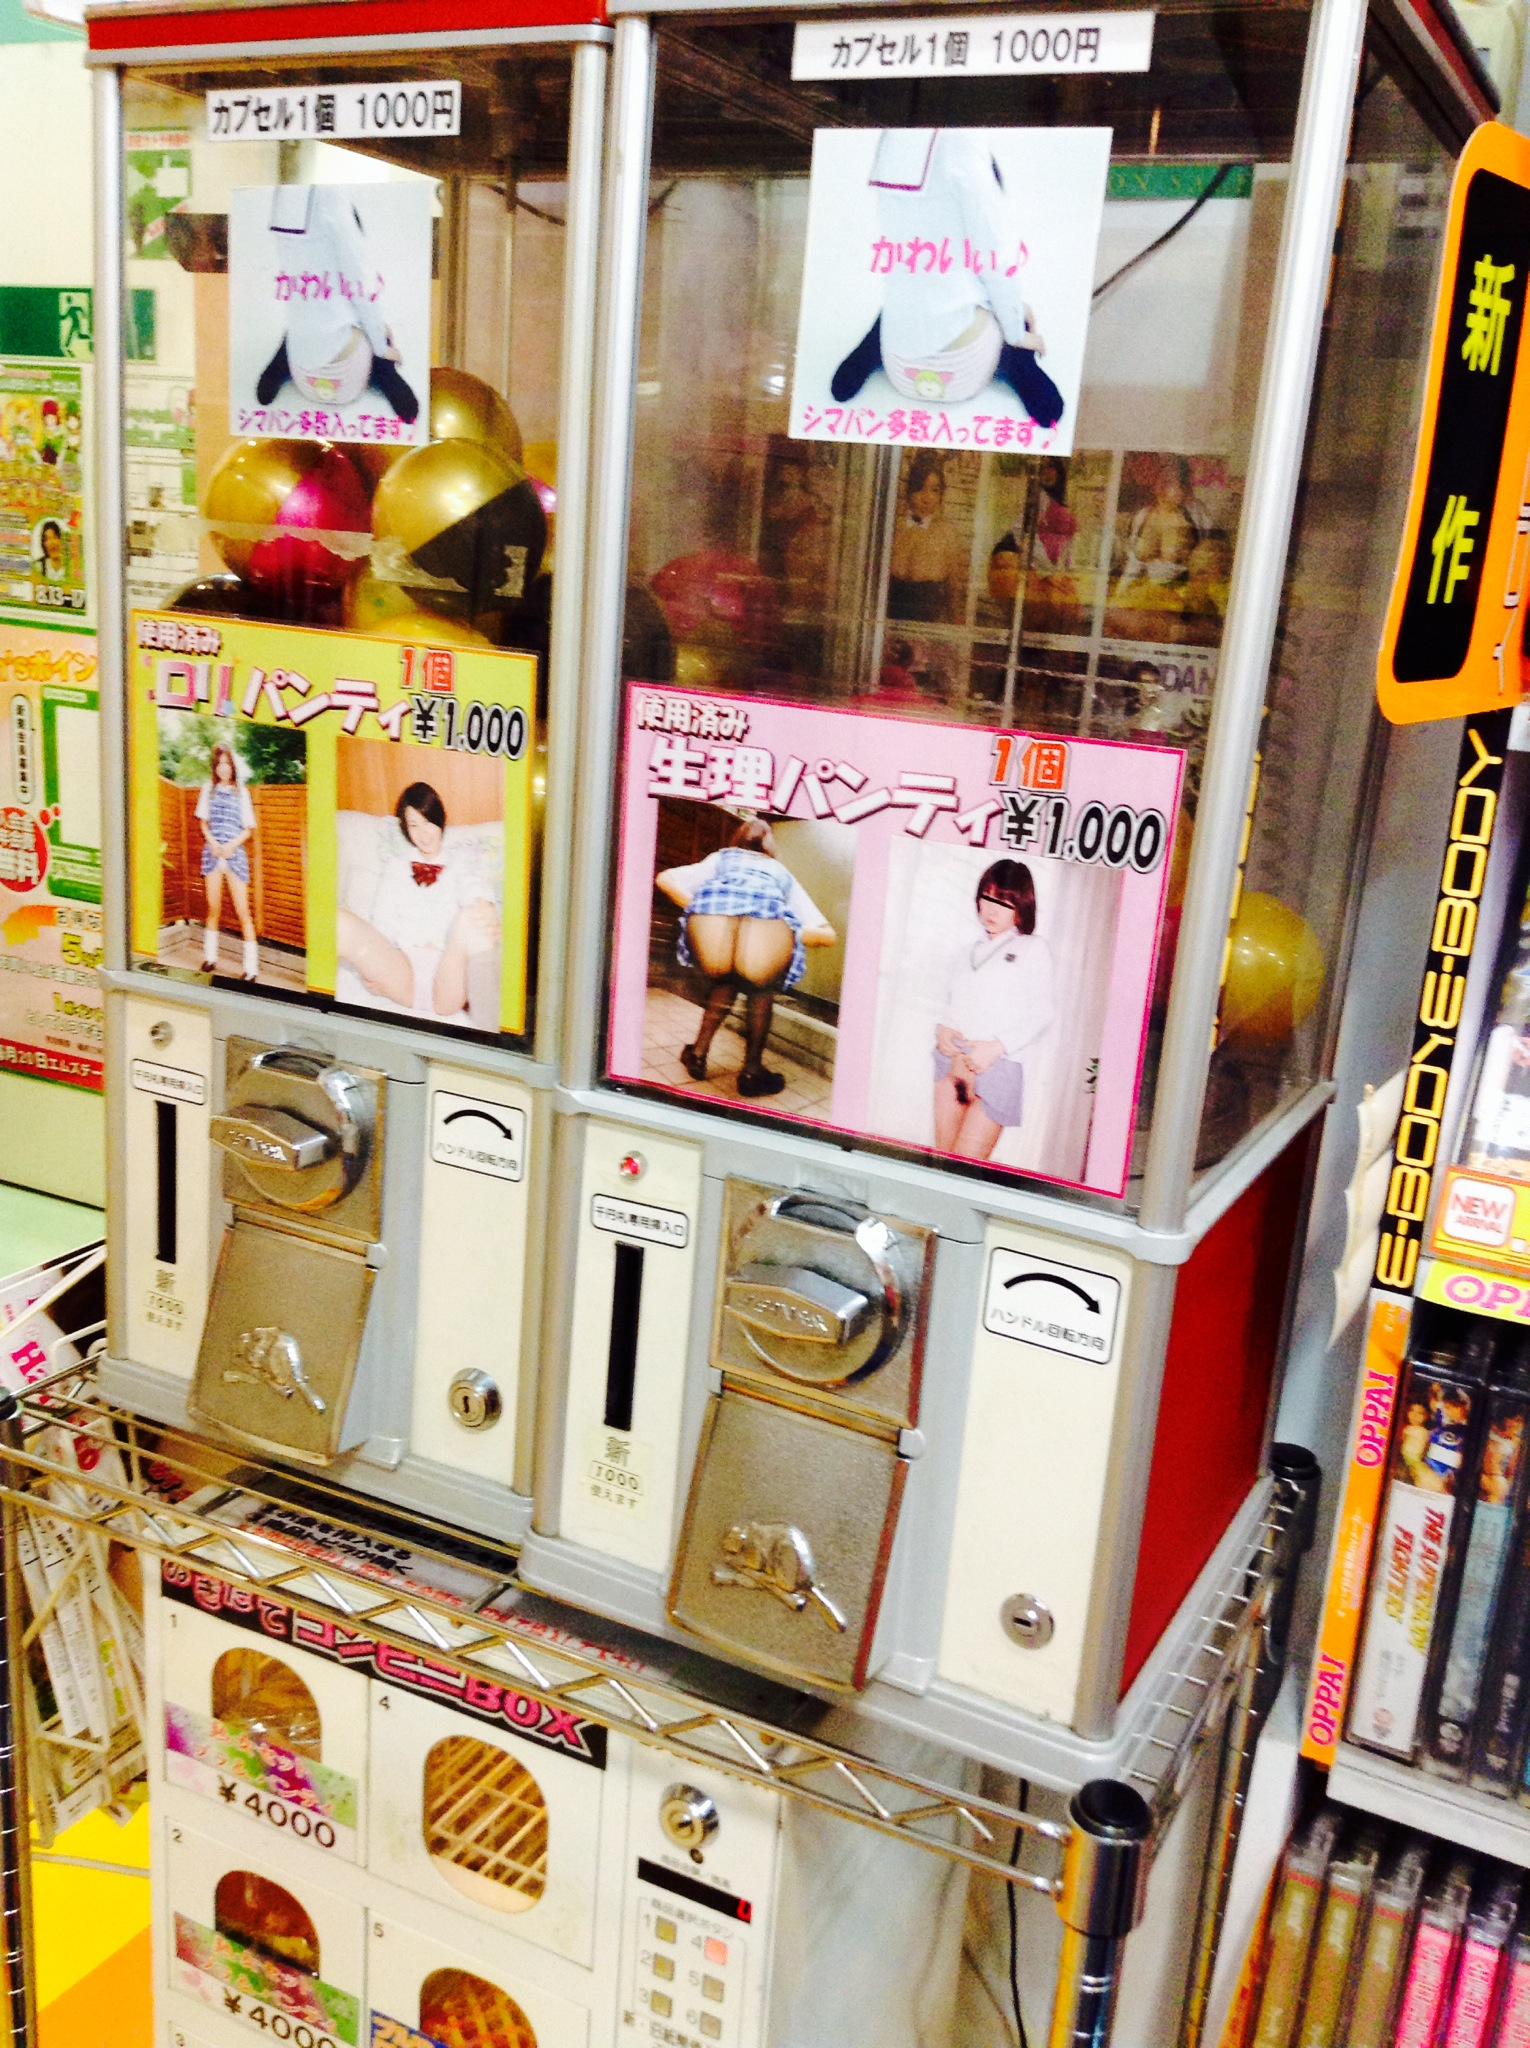 Used panty vending machine